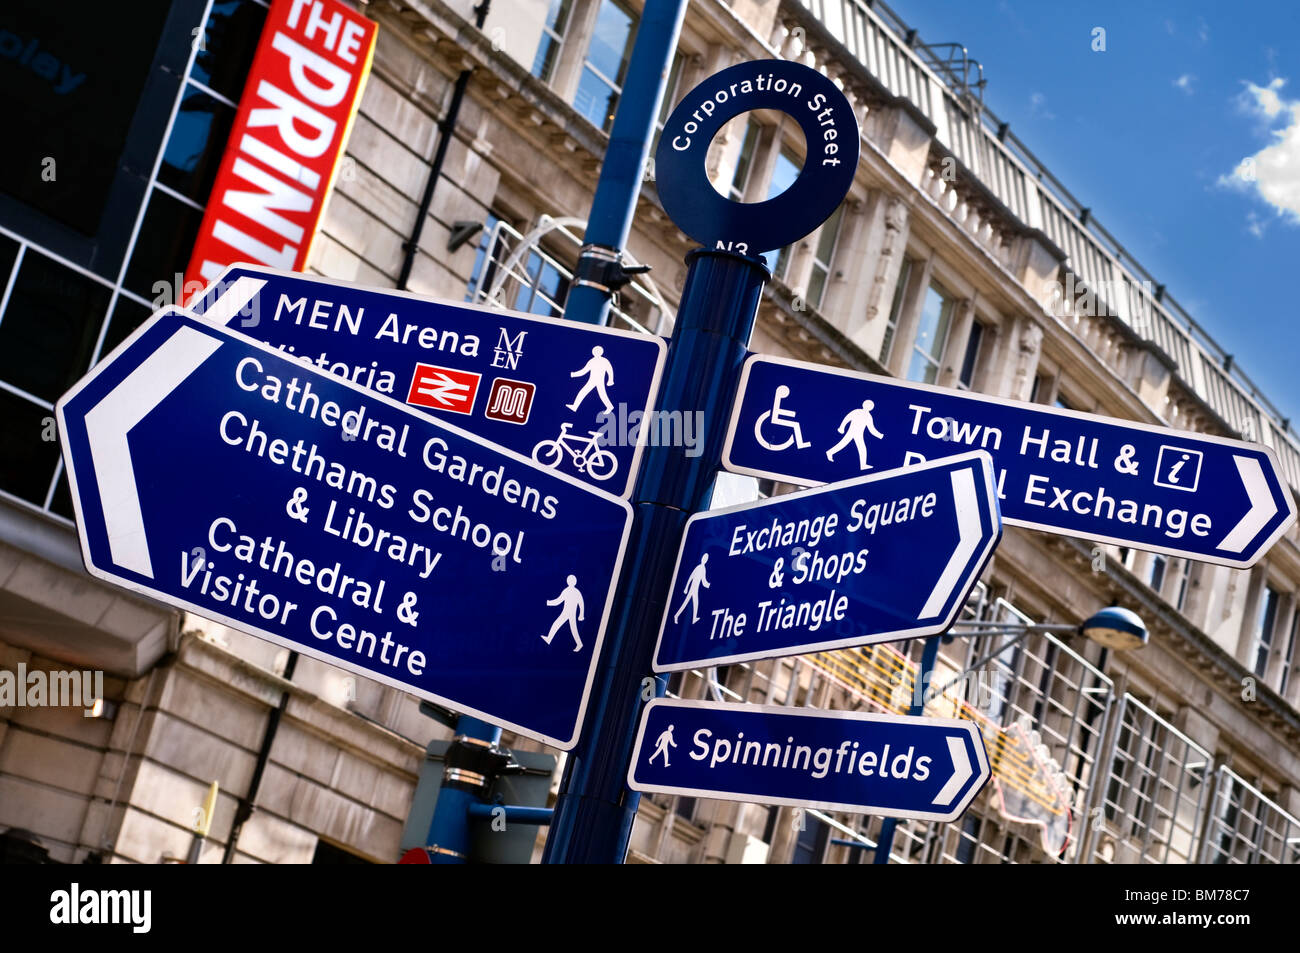 Signs for pedestrians on Corporation Street in Manchester city centre, England, UK - Stock Image